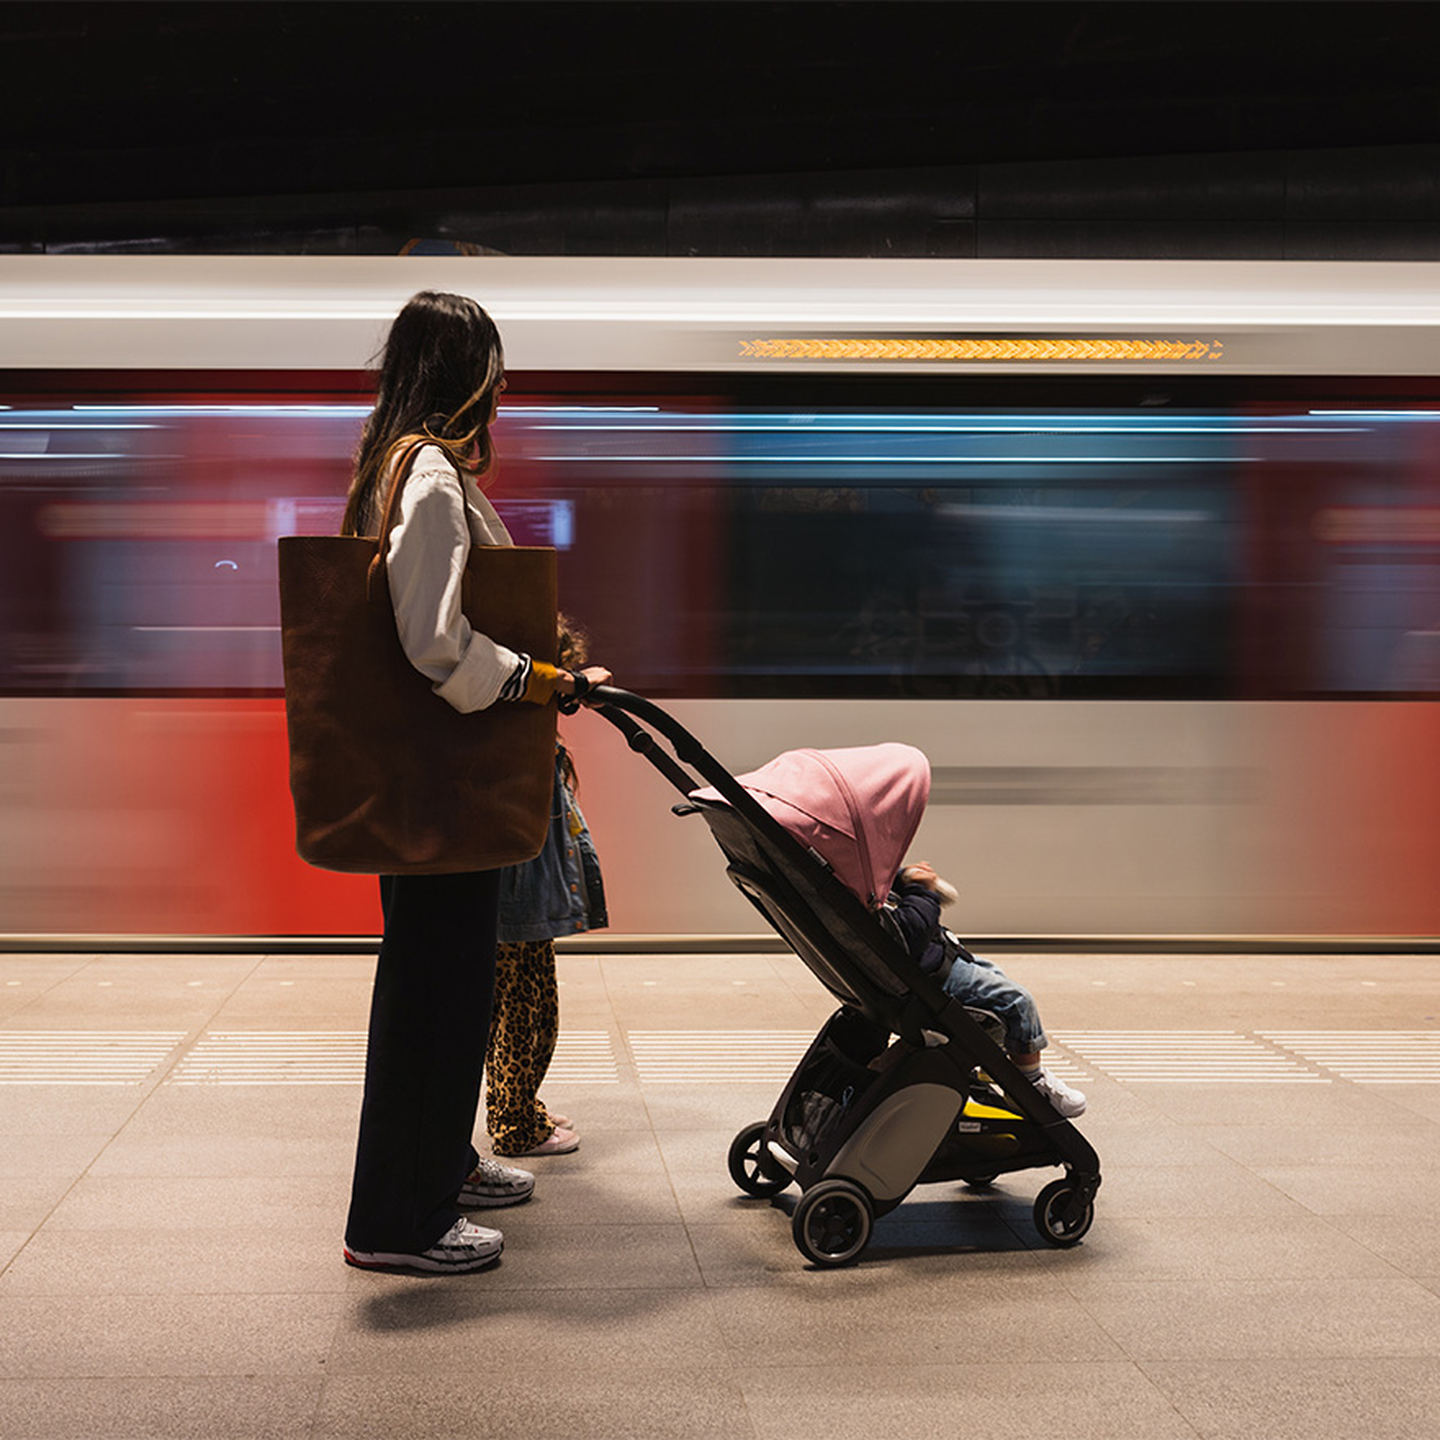 Woman waiting for subway with Ant stroller